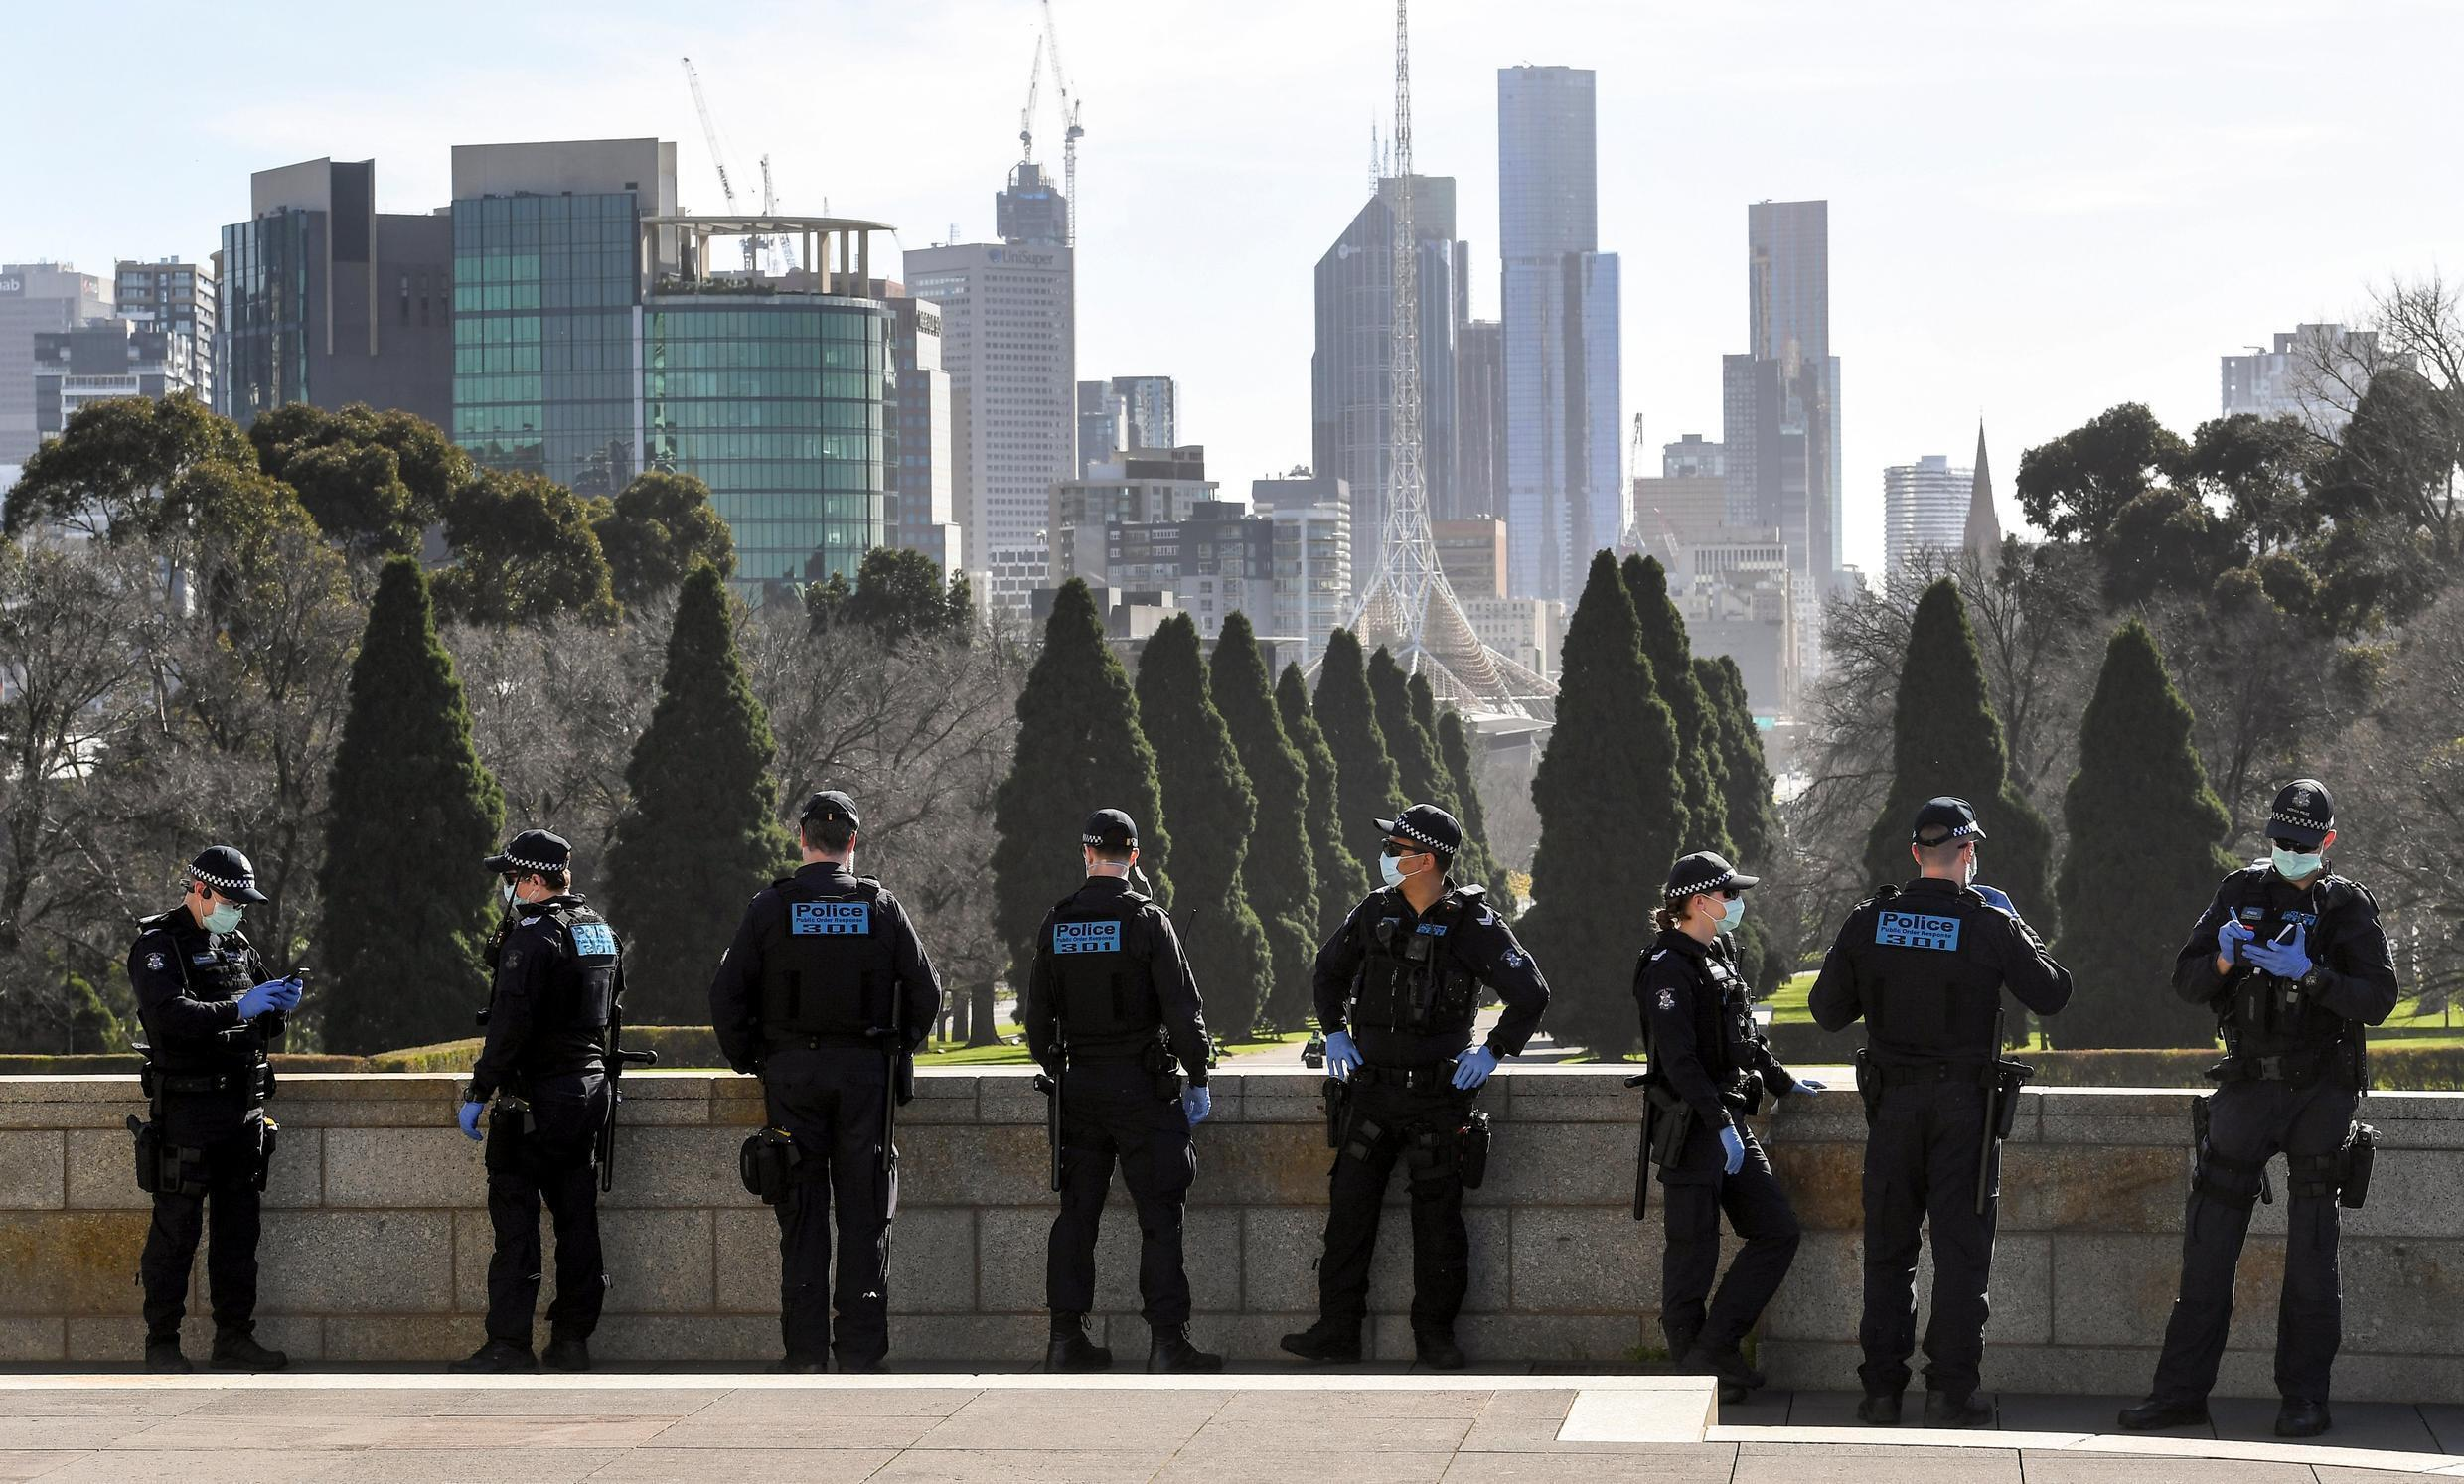 Police patrol The Shrine of Remembrance enforcing the wearing of face masks in Melbourne, Australia on July 31, 2020.